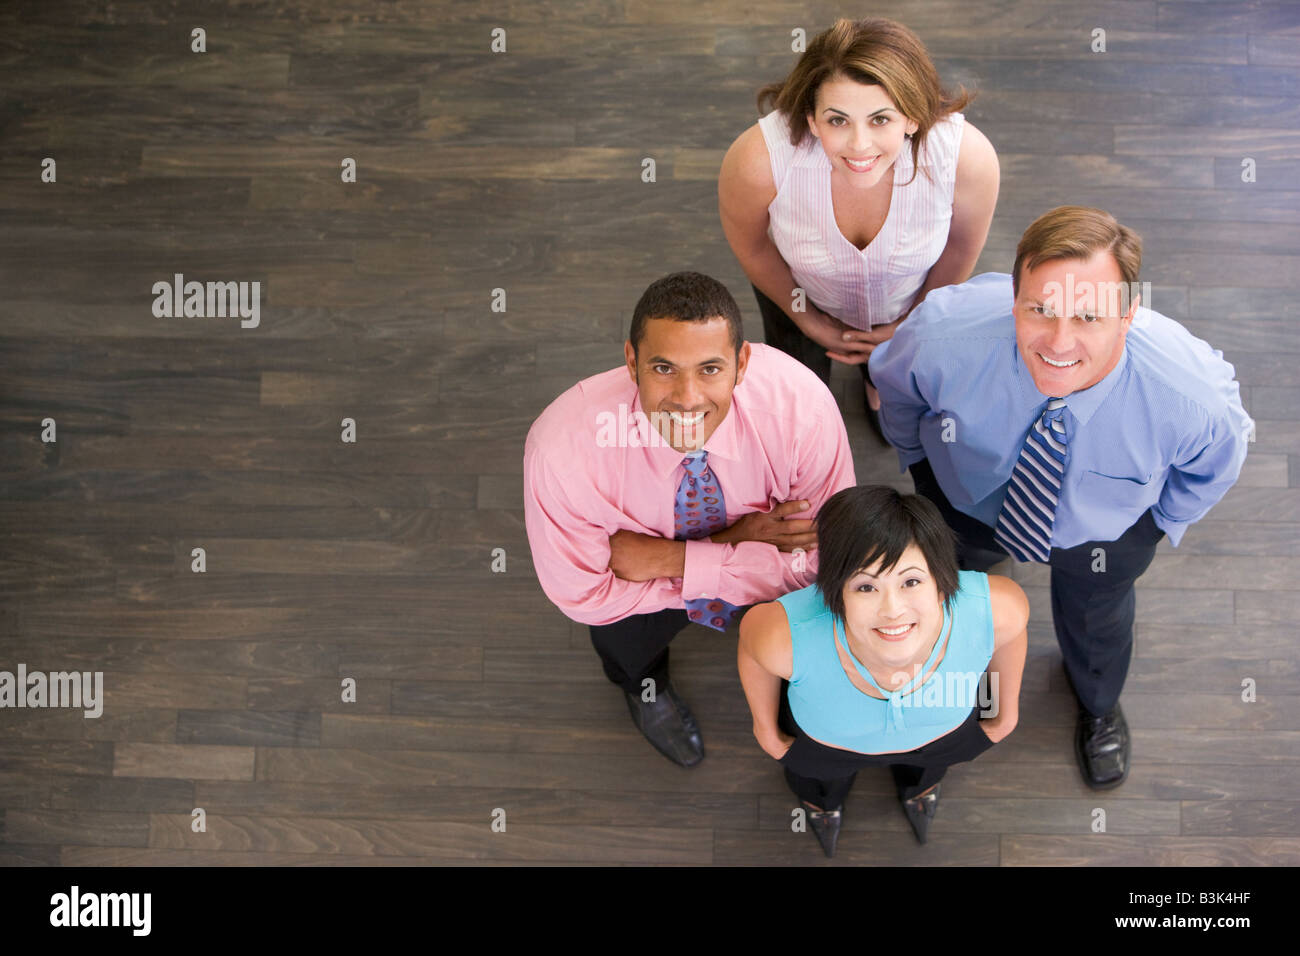 Four businesspeople standing indoors smiling - Stock Image